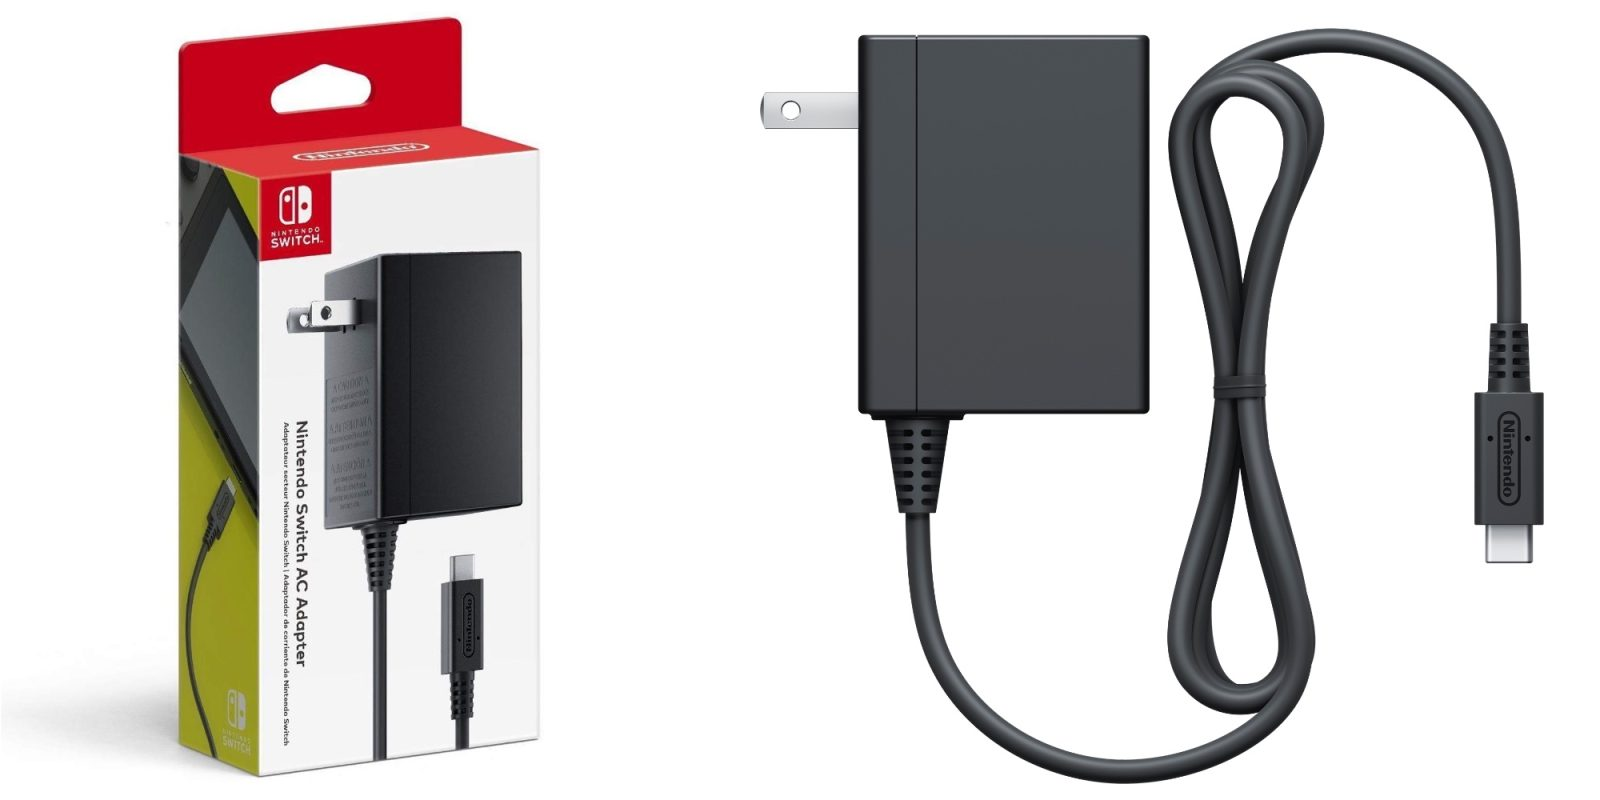 Grab Nintendo's official Switch USB-C Power Adapter at a low